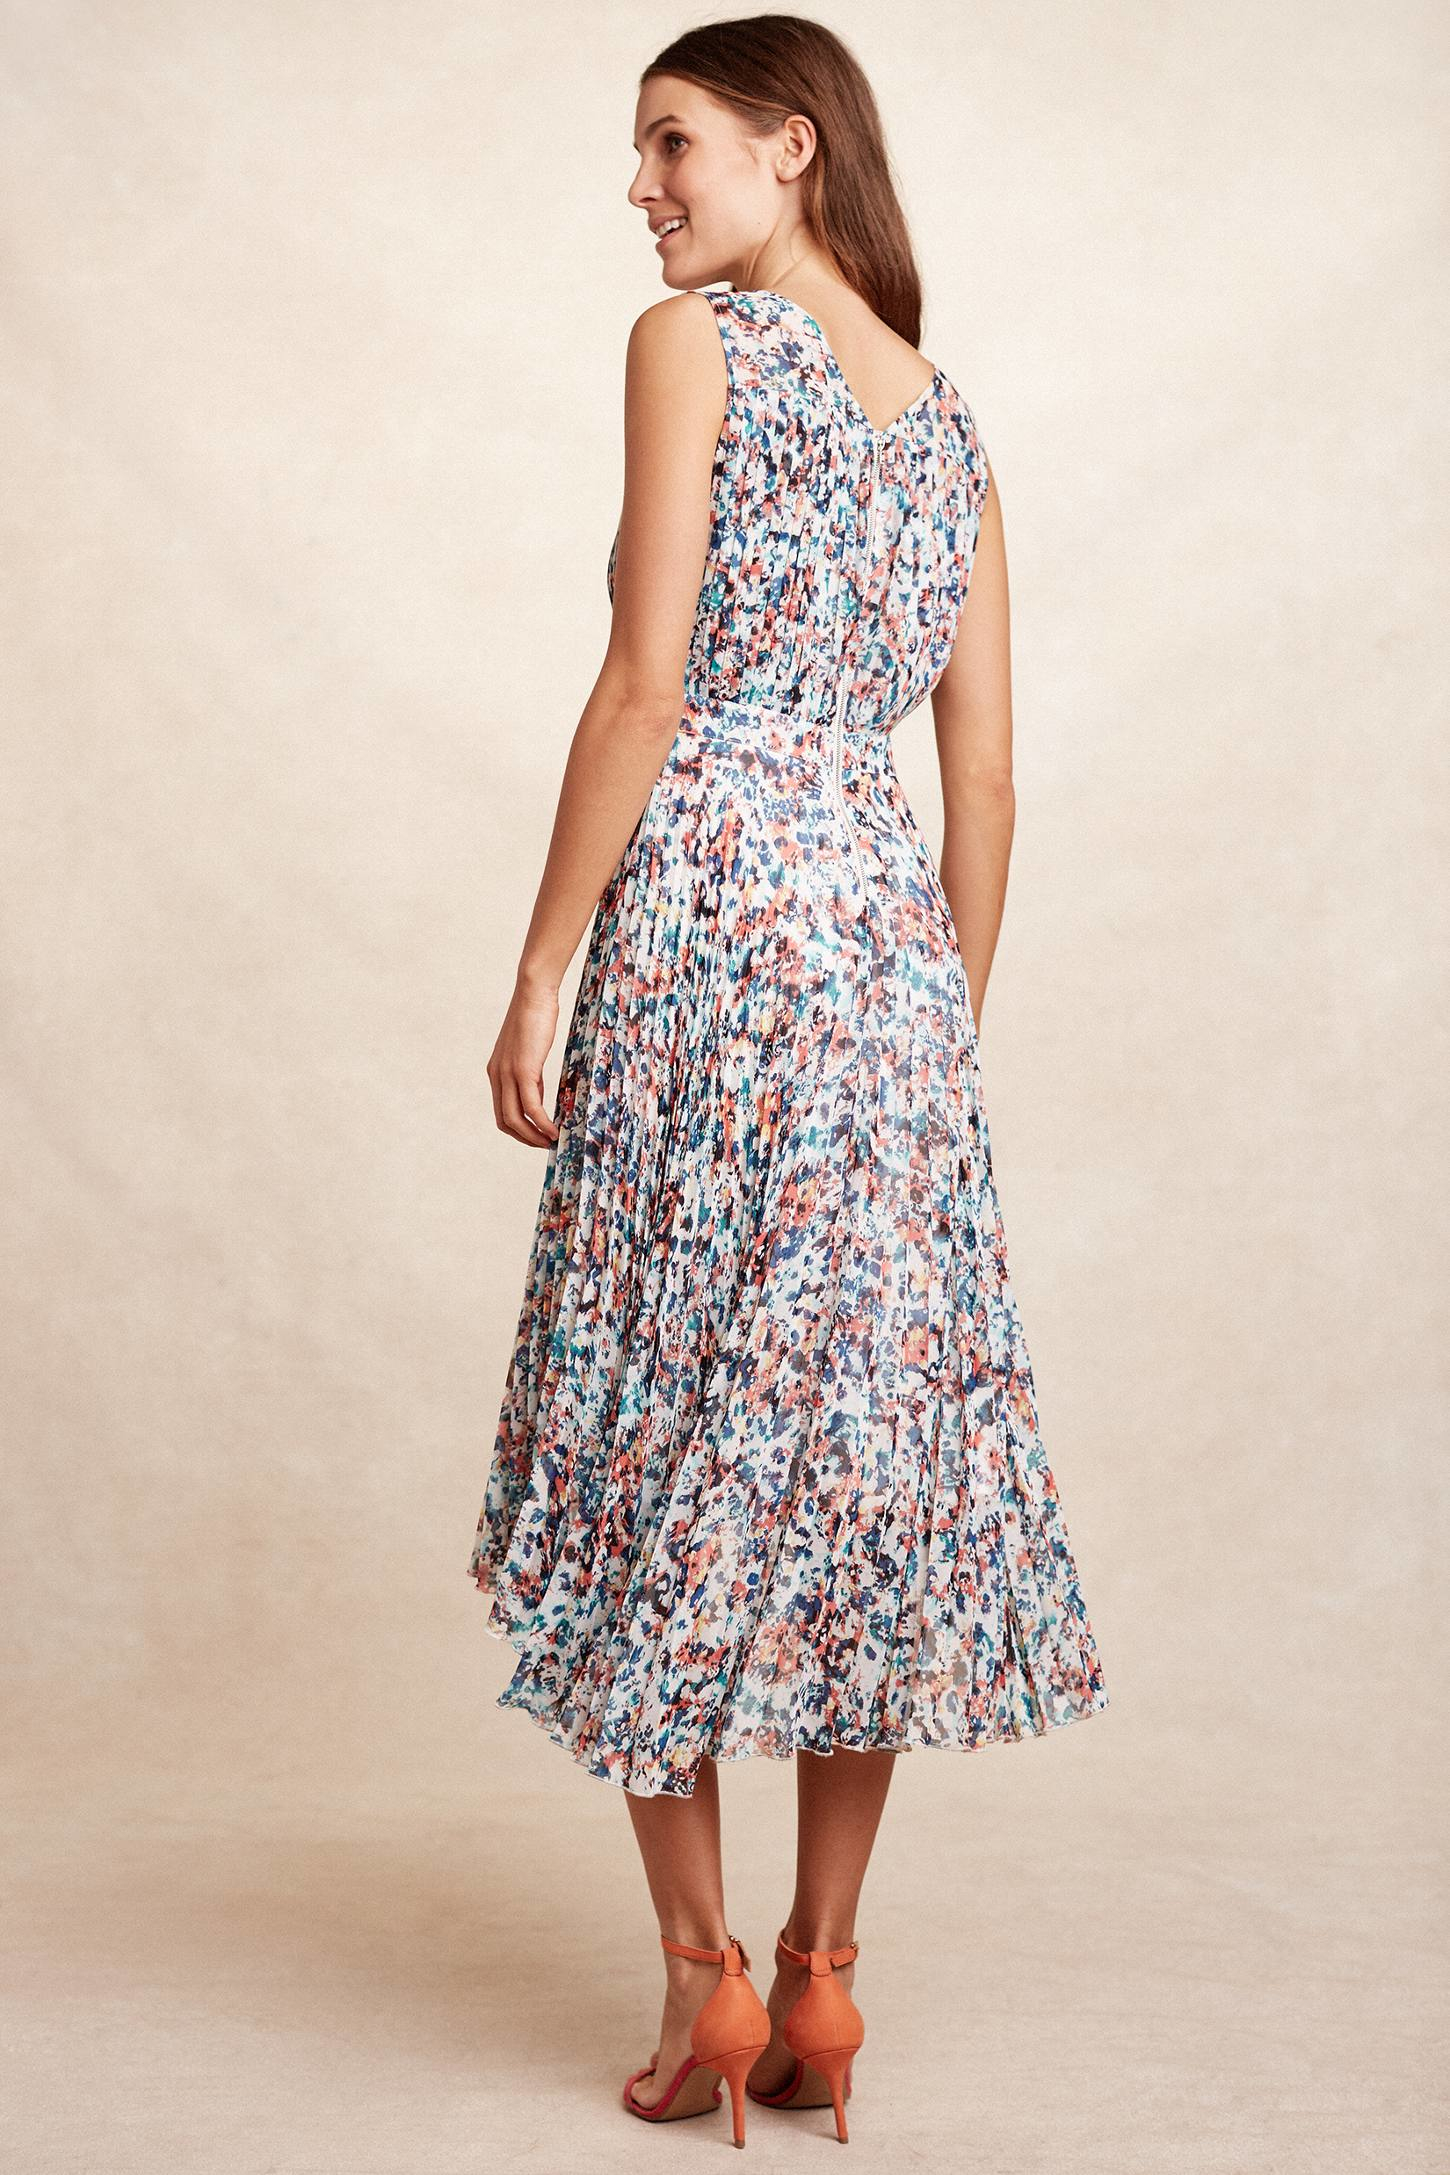 Tracy reese lace dress anthropologie